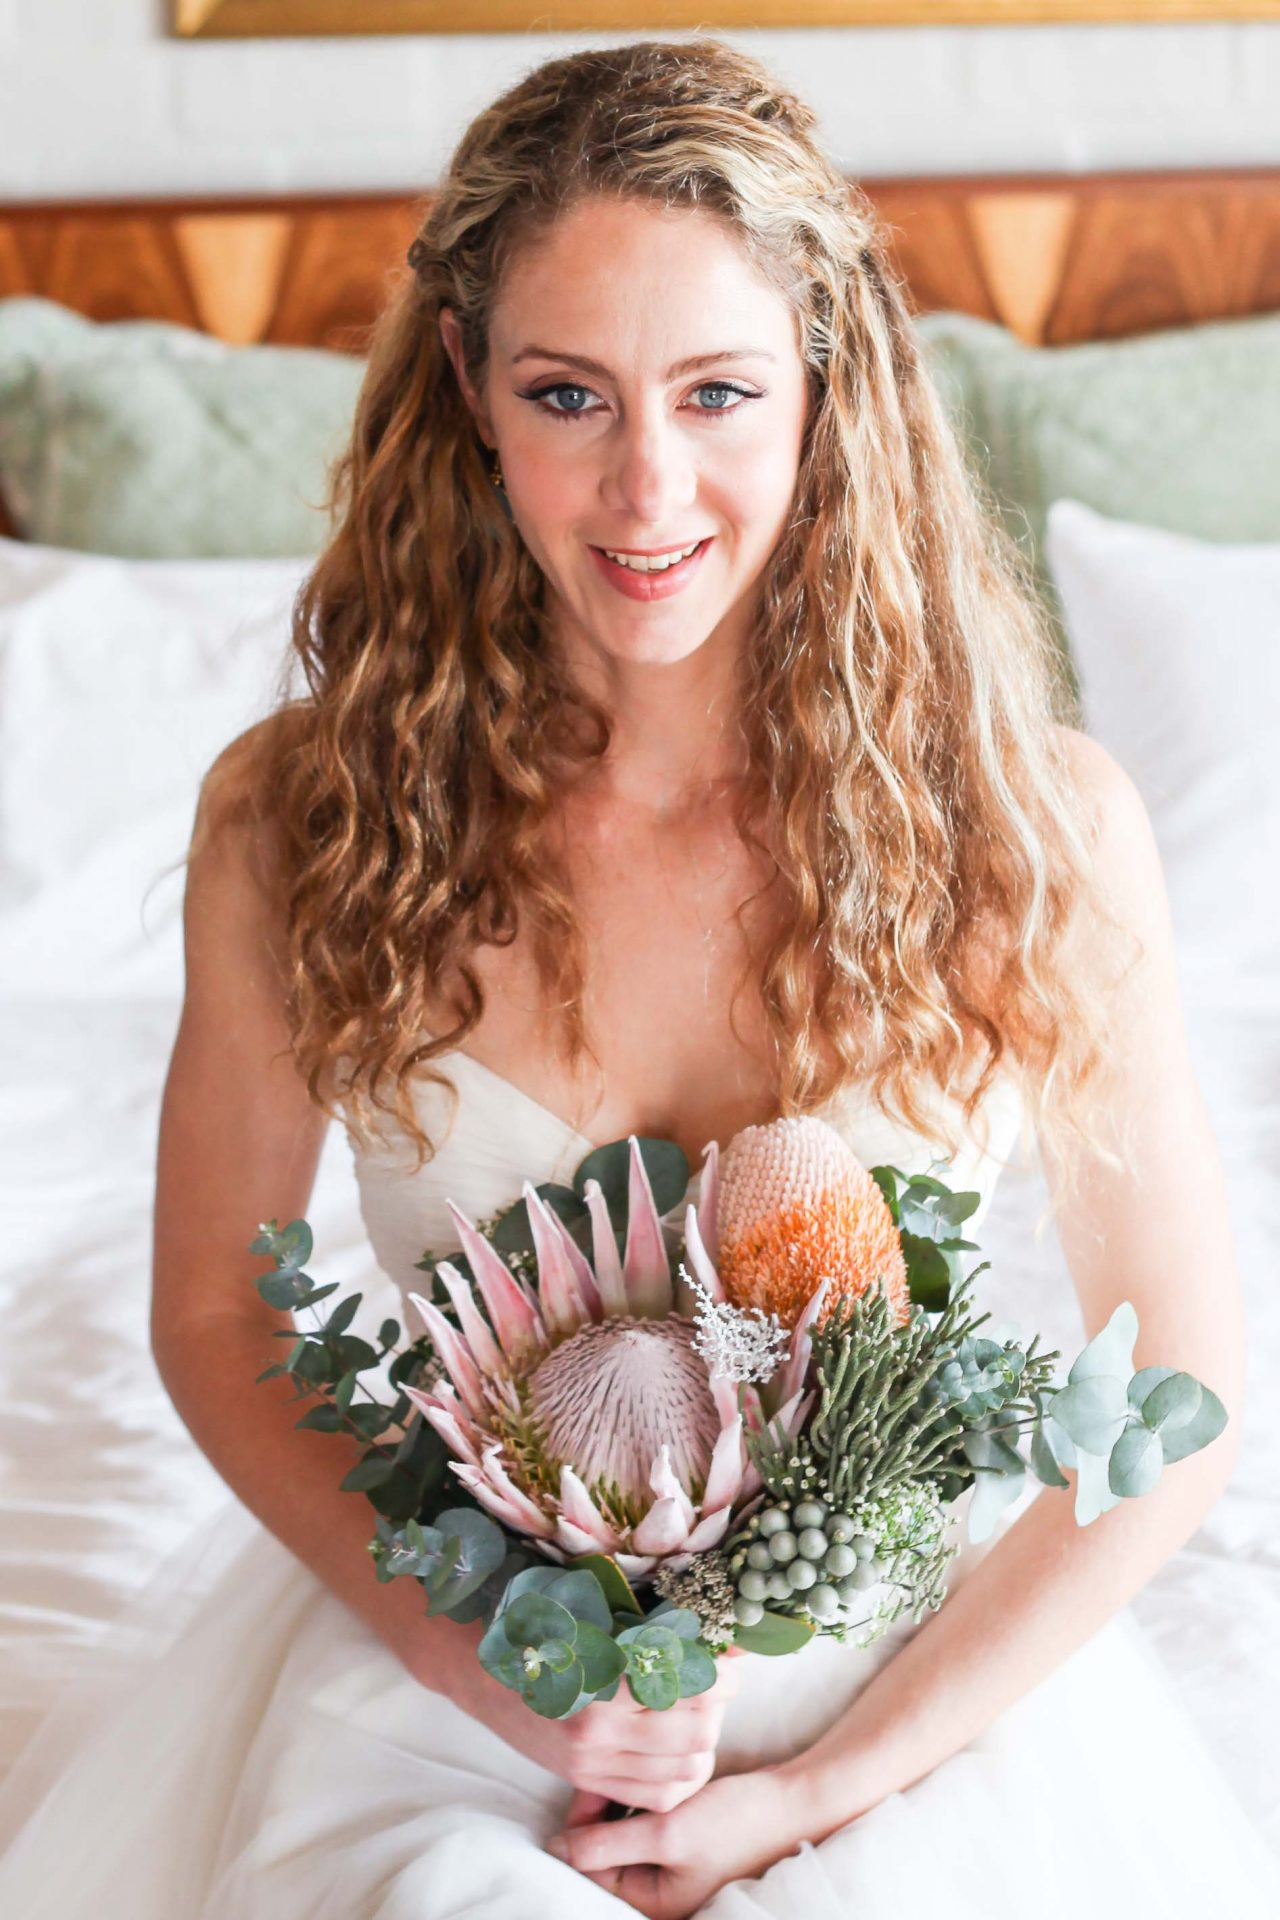 lorein-and-david_elana-van-zyl-overberg-swellendam-photographer-de-uijlenes-7670